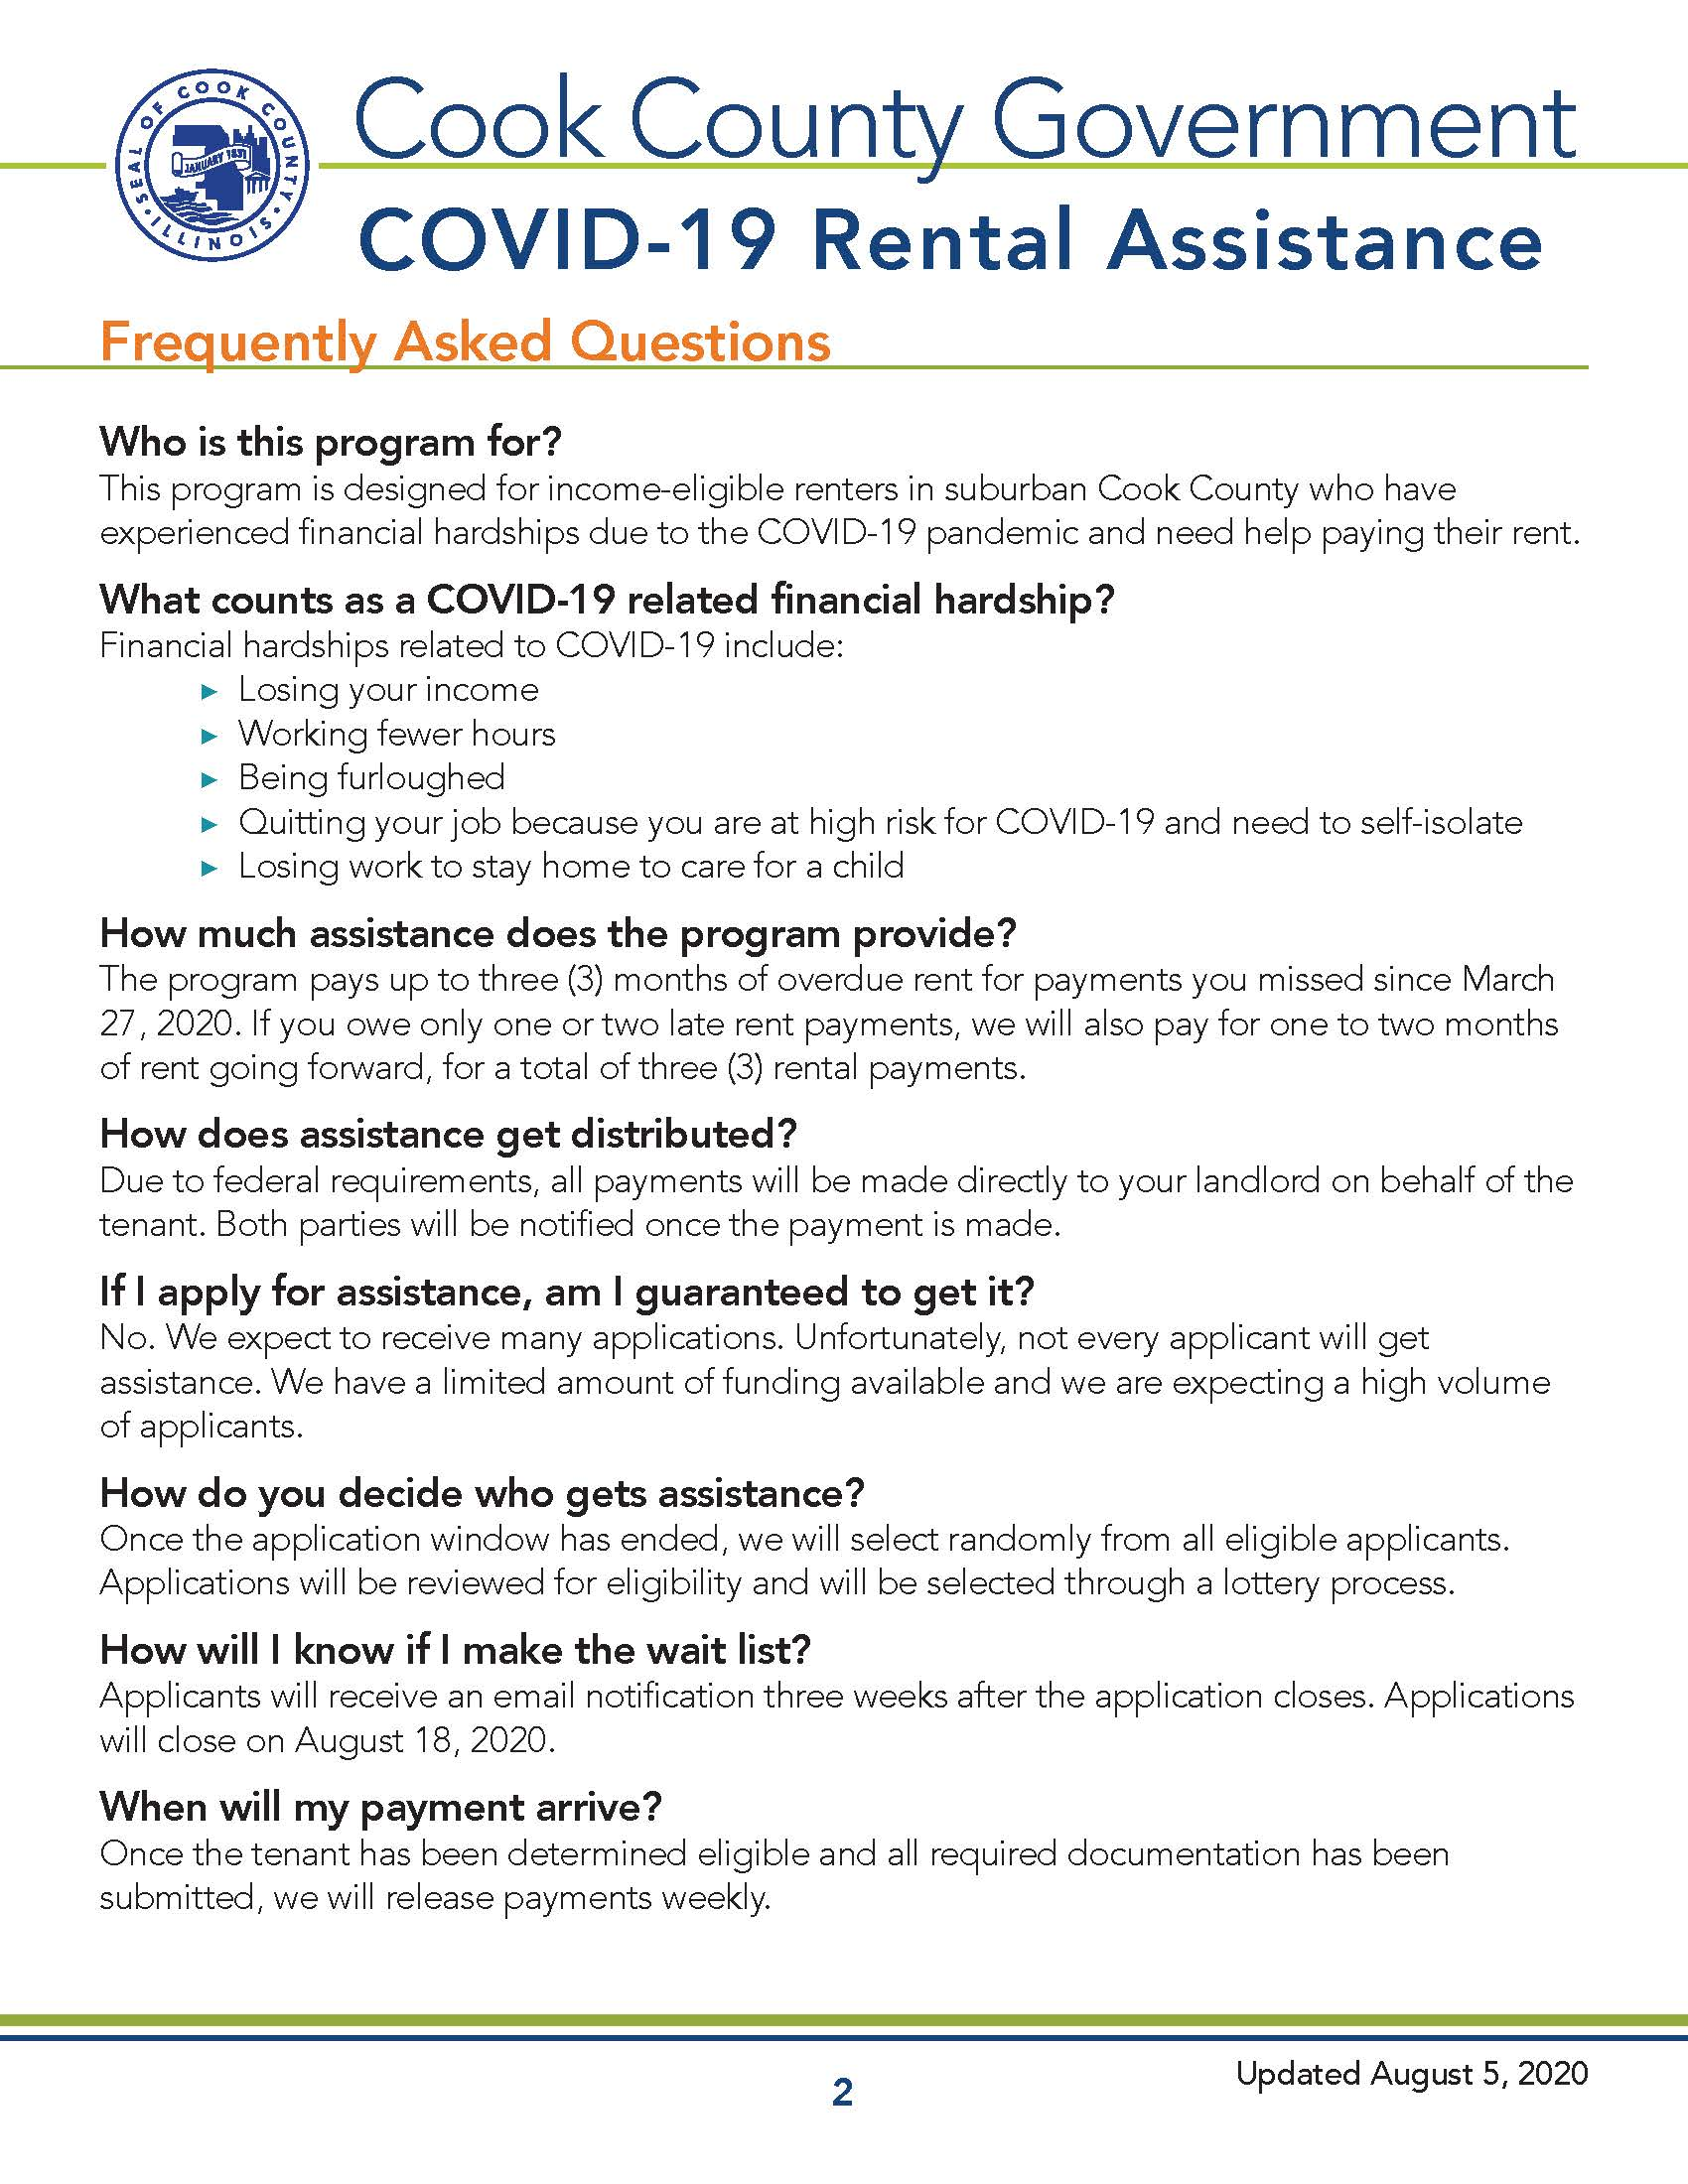 Cook County COVID-19 Recovery - Rental Assistance Overview Page 2